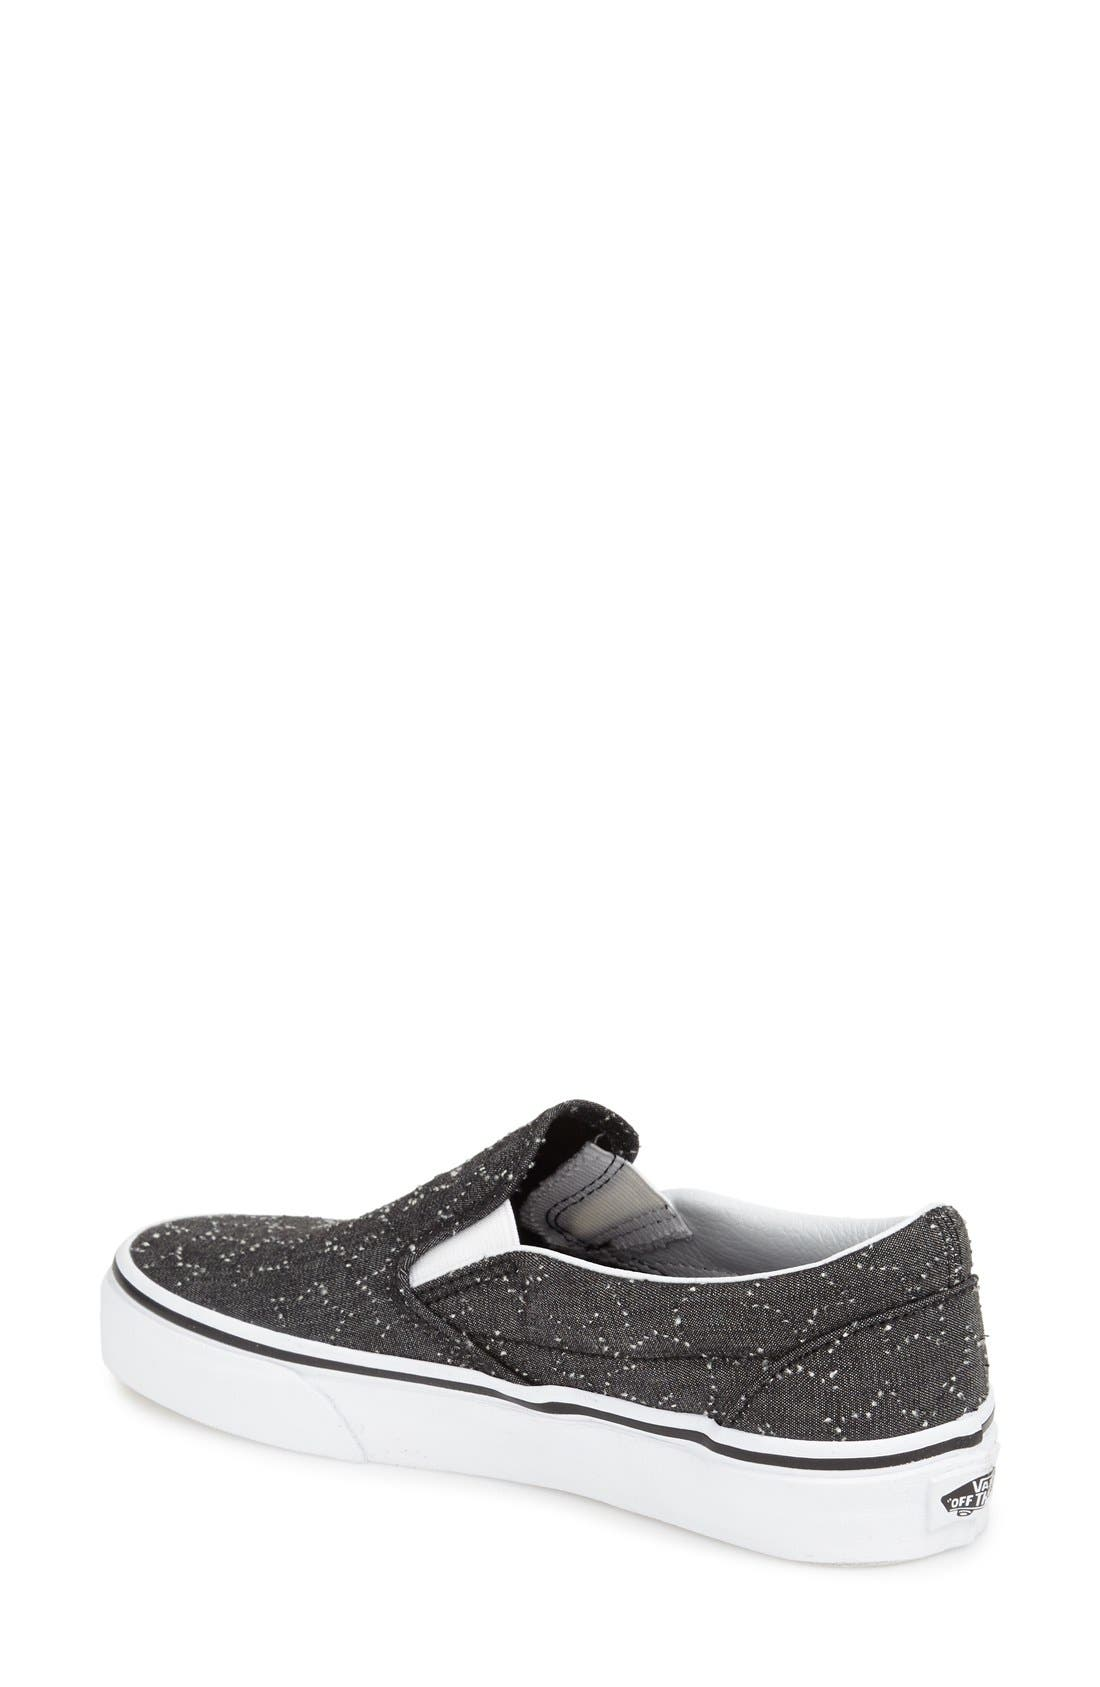 Classic Slip-On Sneaker,                             Alternate thumbnail 131, color,